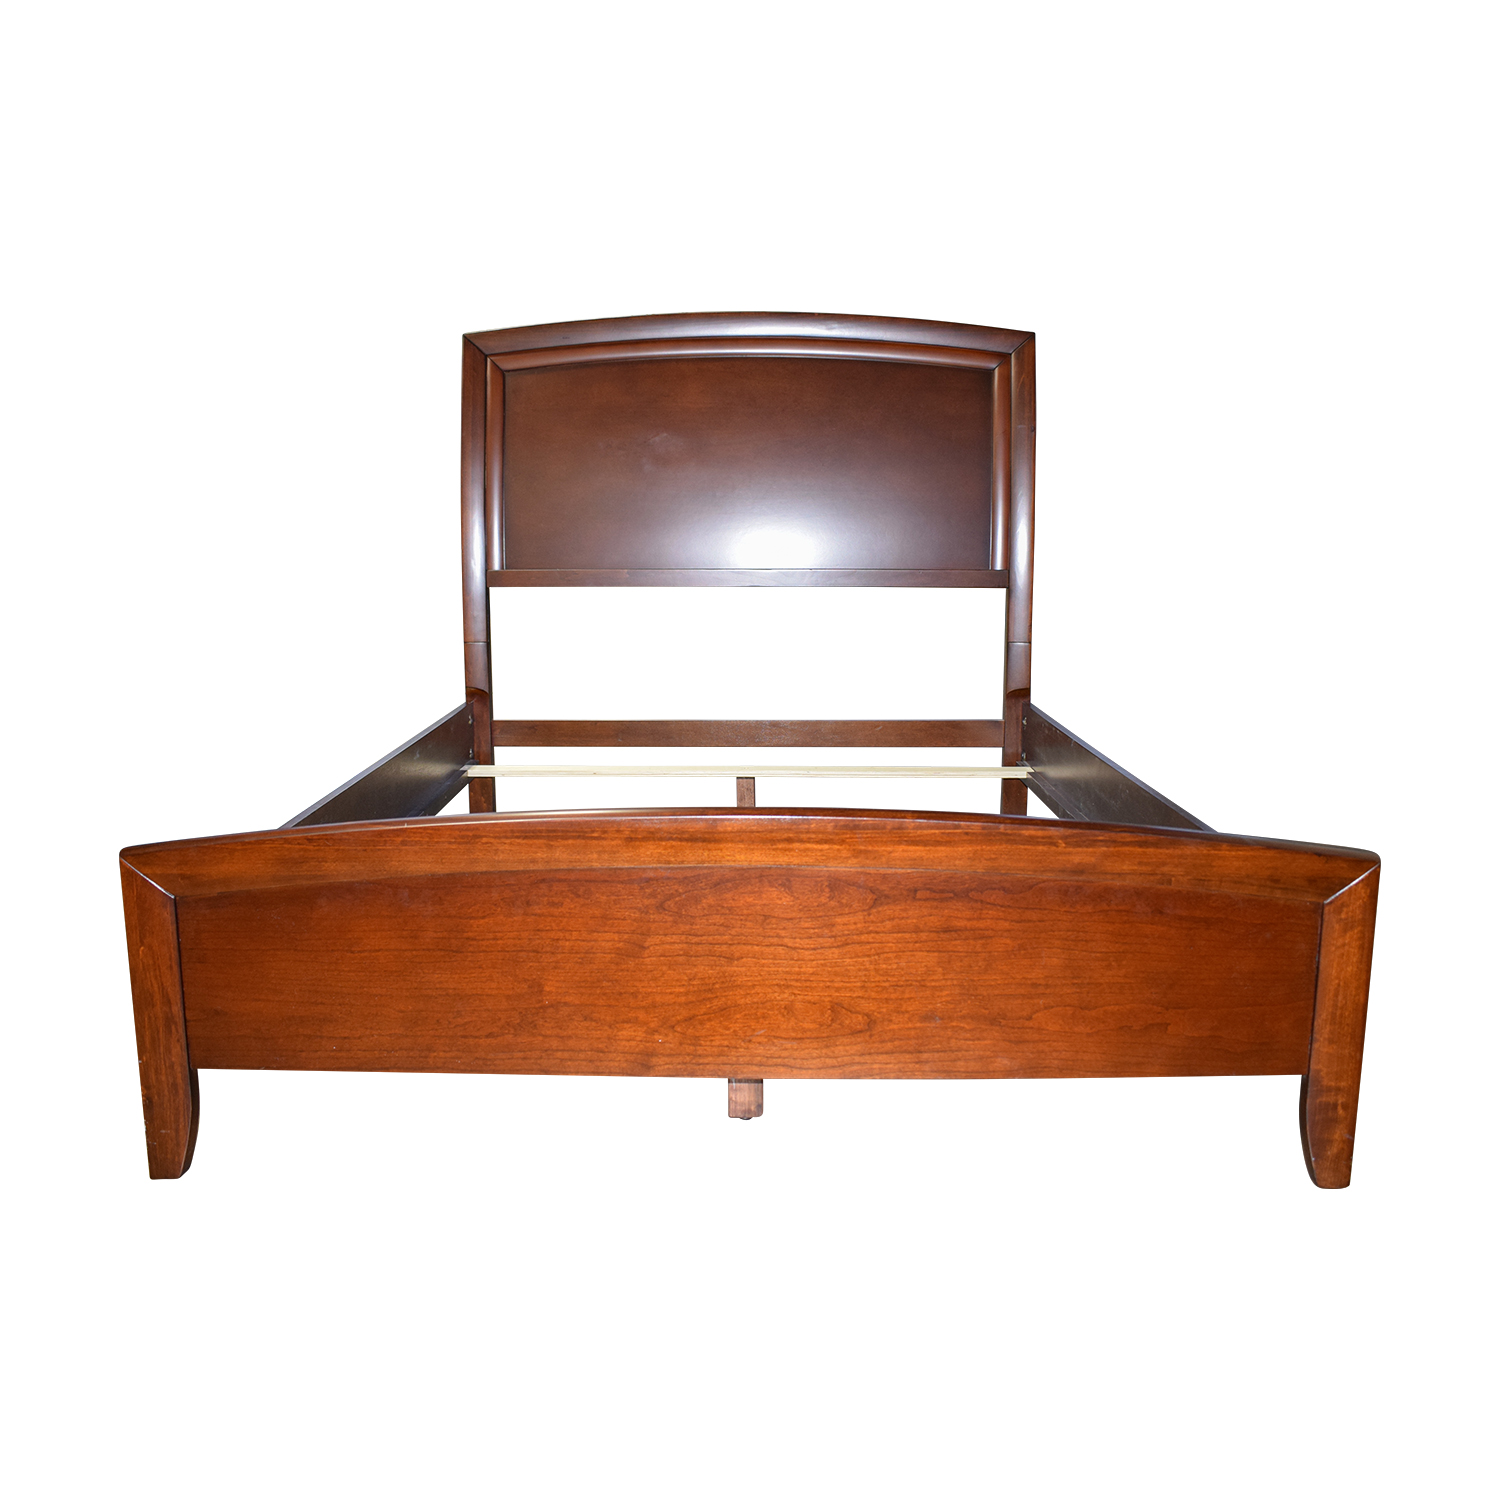 Casana Furniture Casana Furniture Queen Wood Bed Frame BROWN